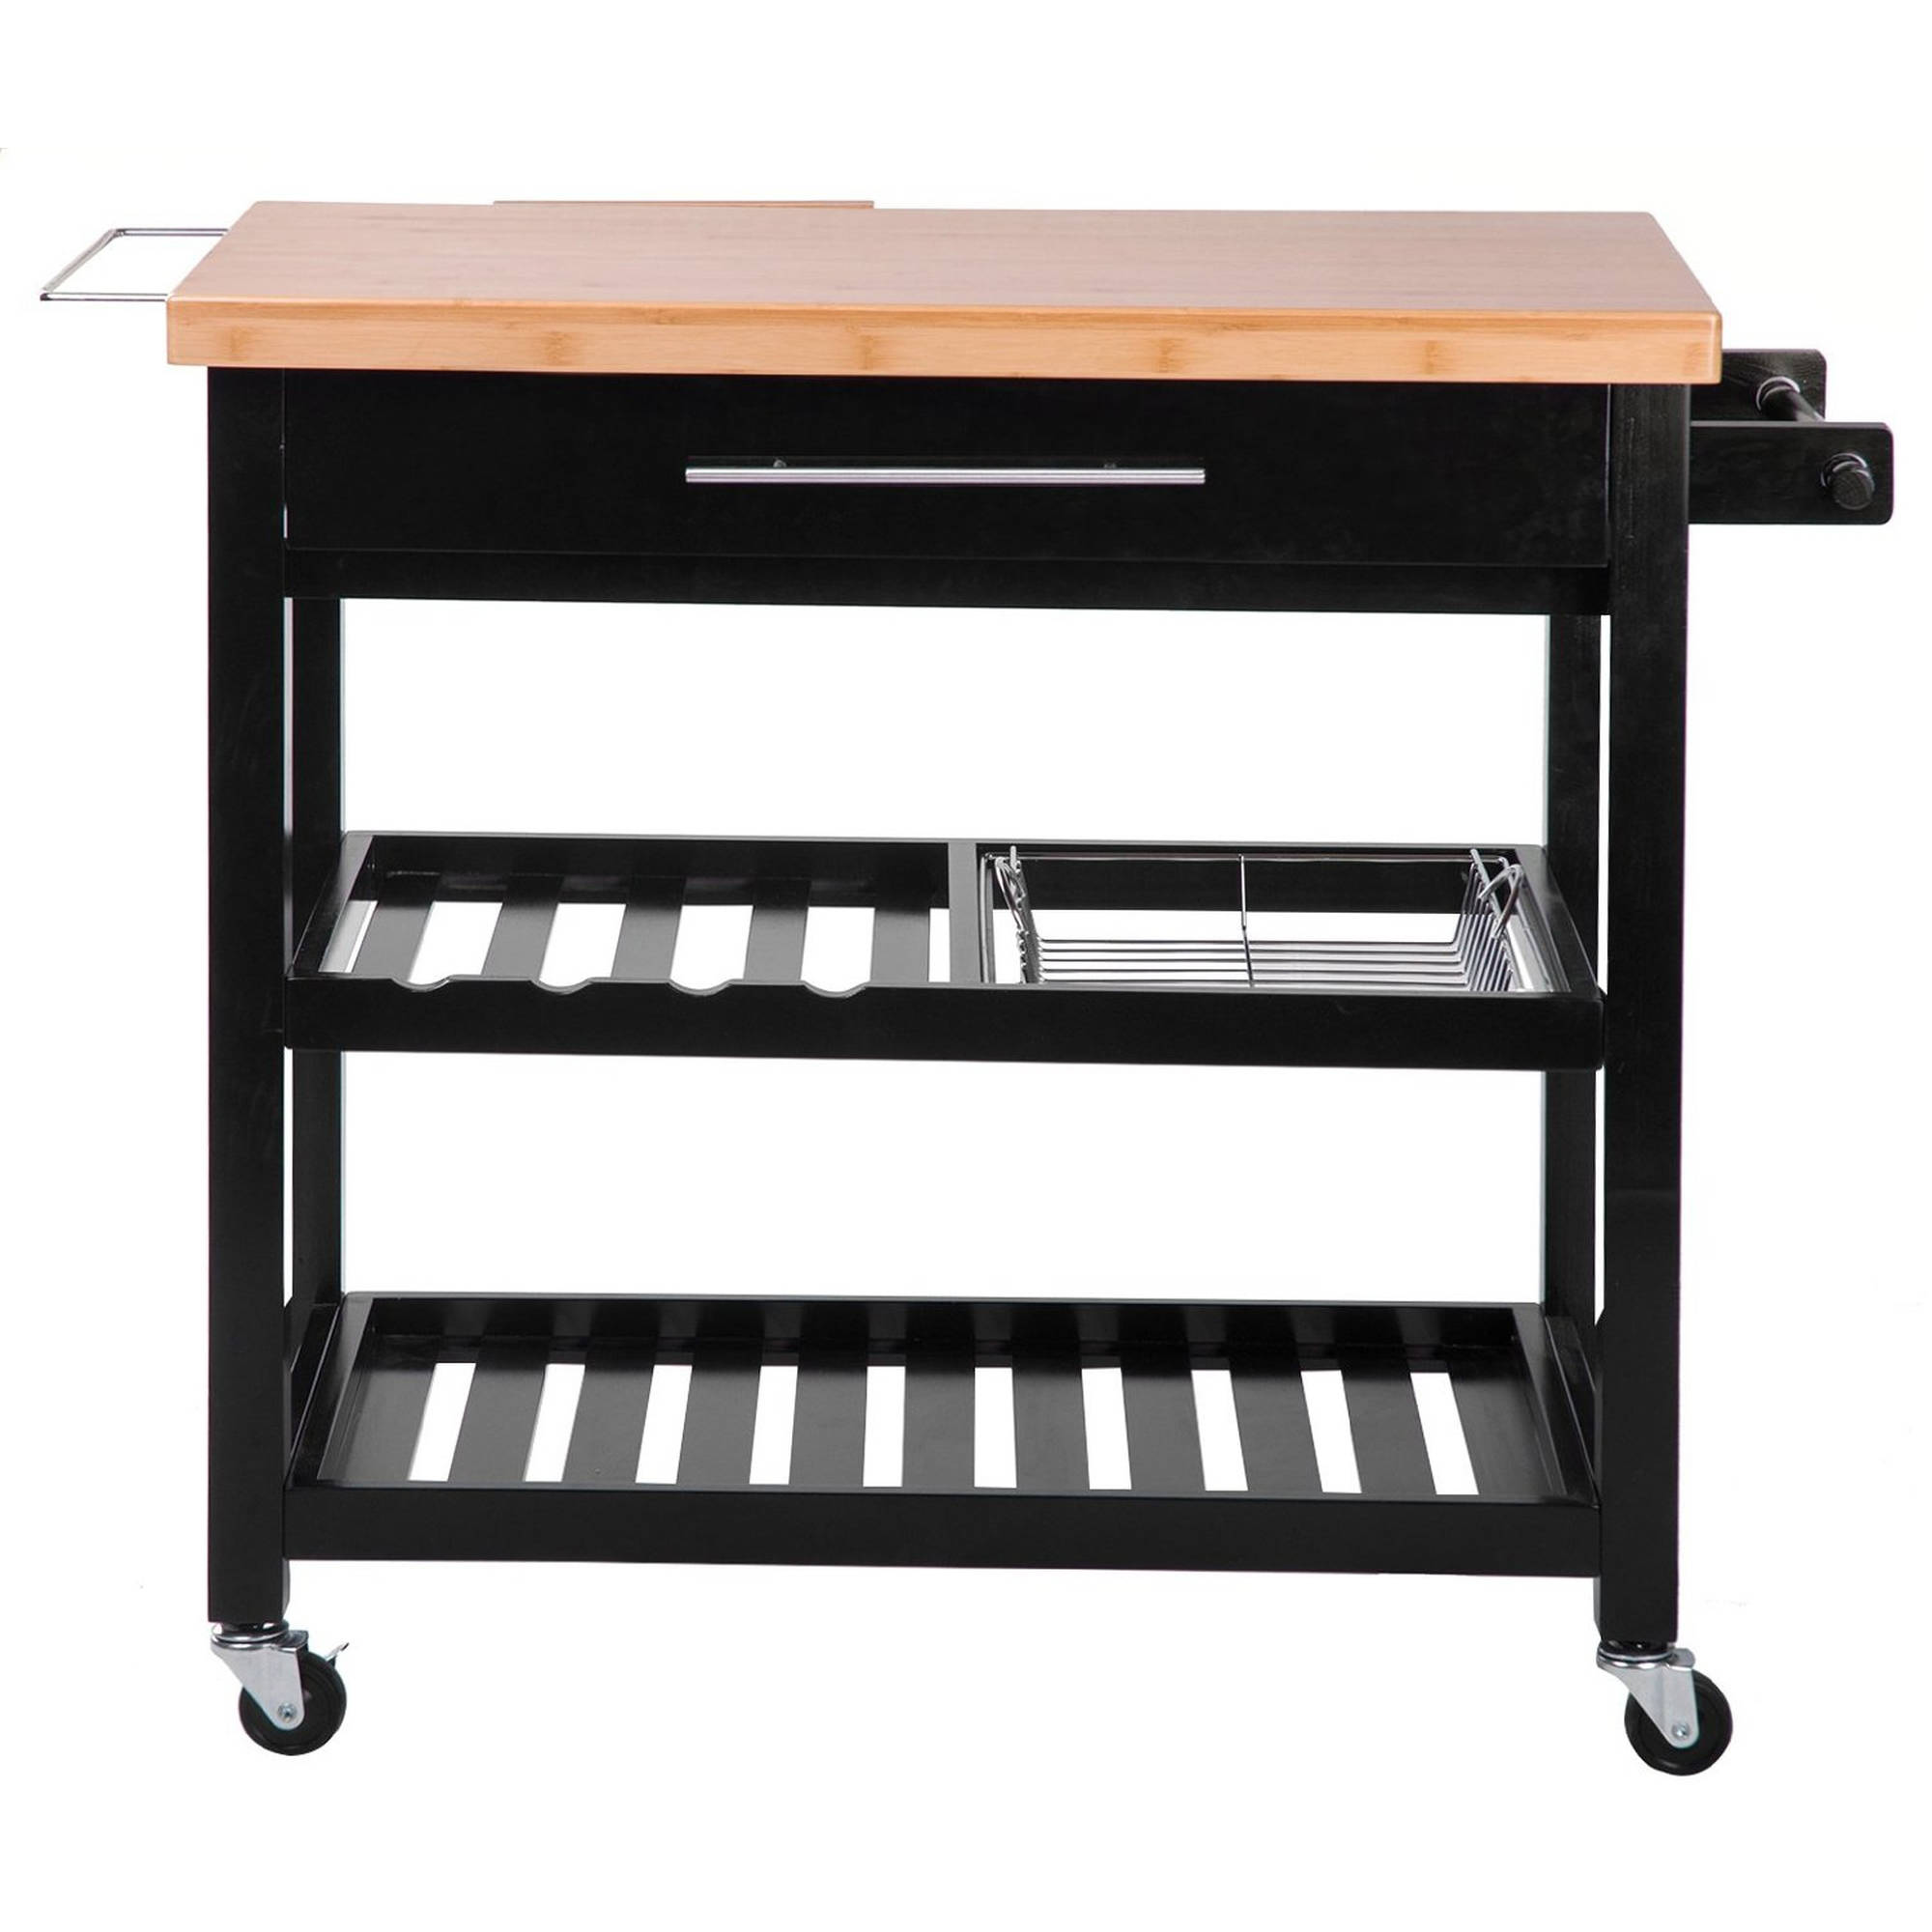 Merax Kitchen Furniture Natural Wood Kitchen Cart/Island with Drawers and Lockable Casters